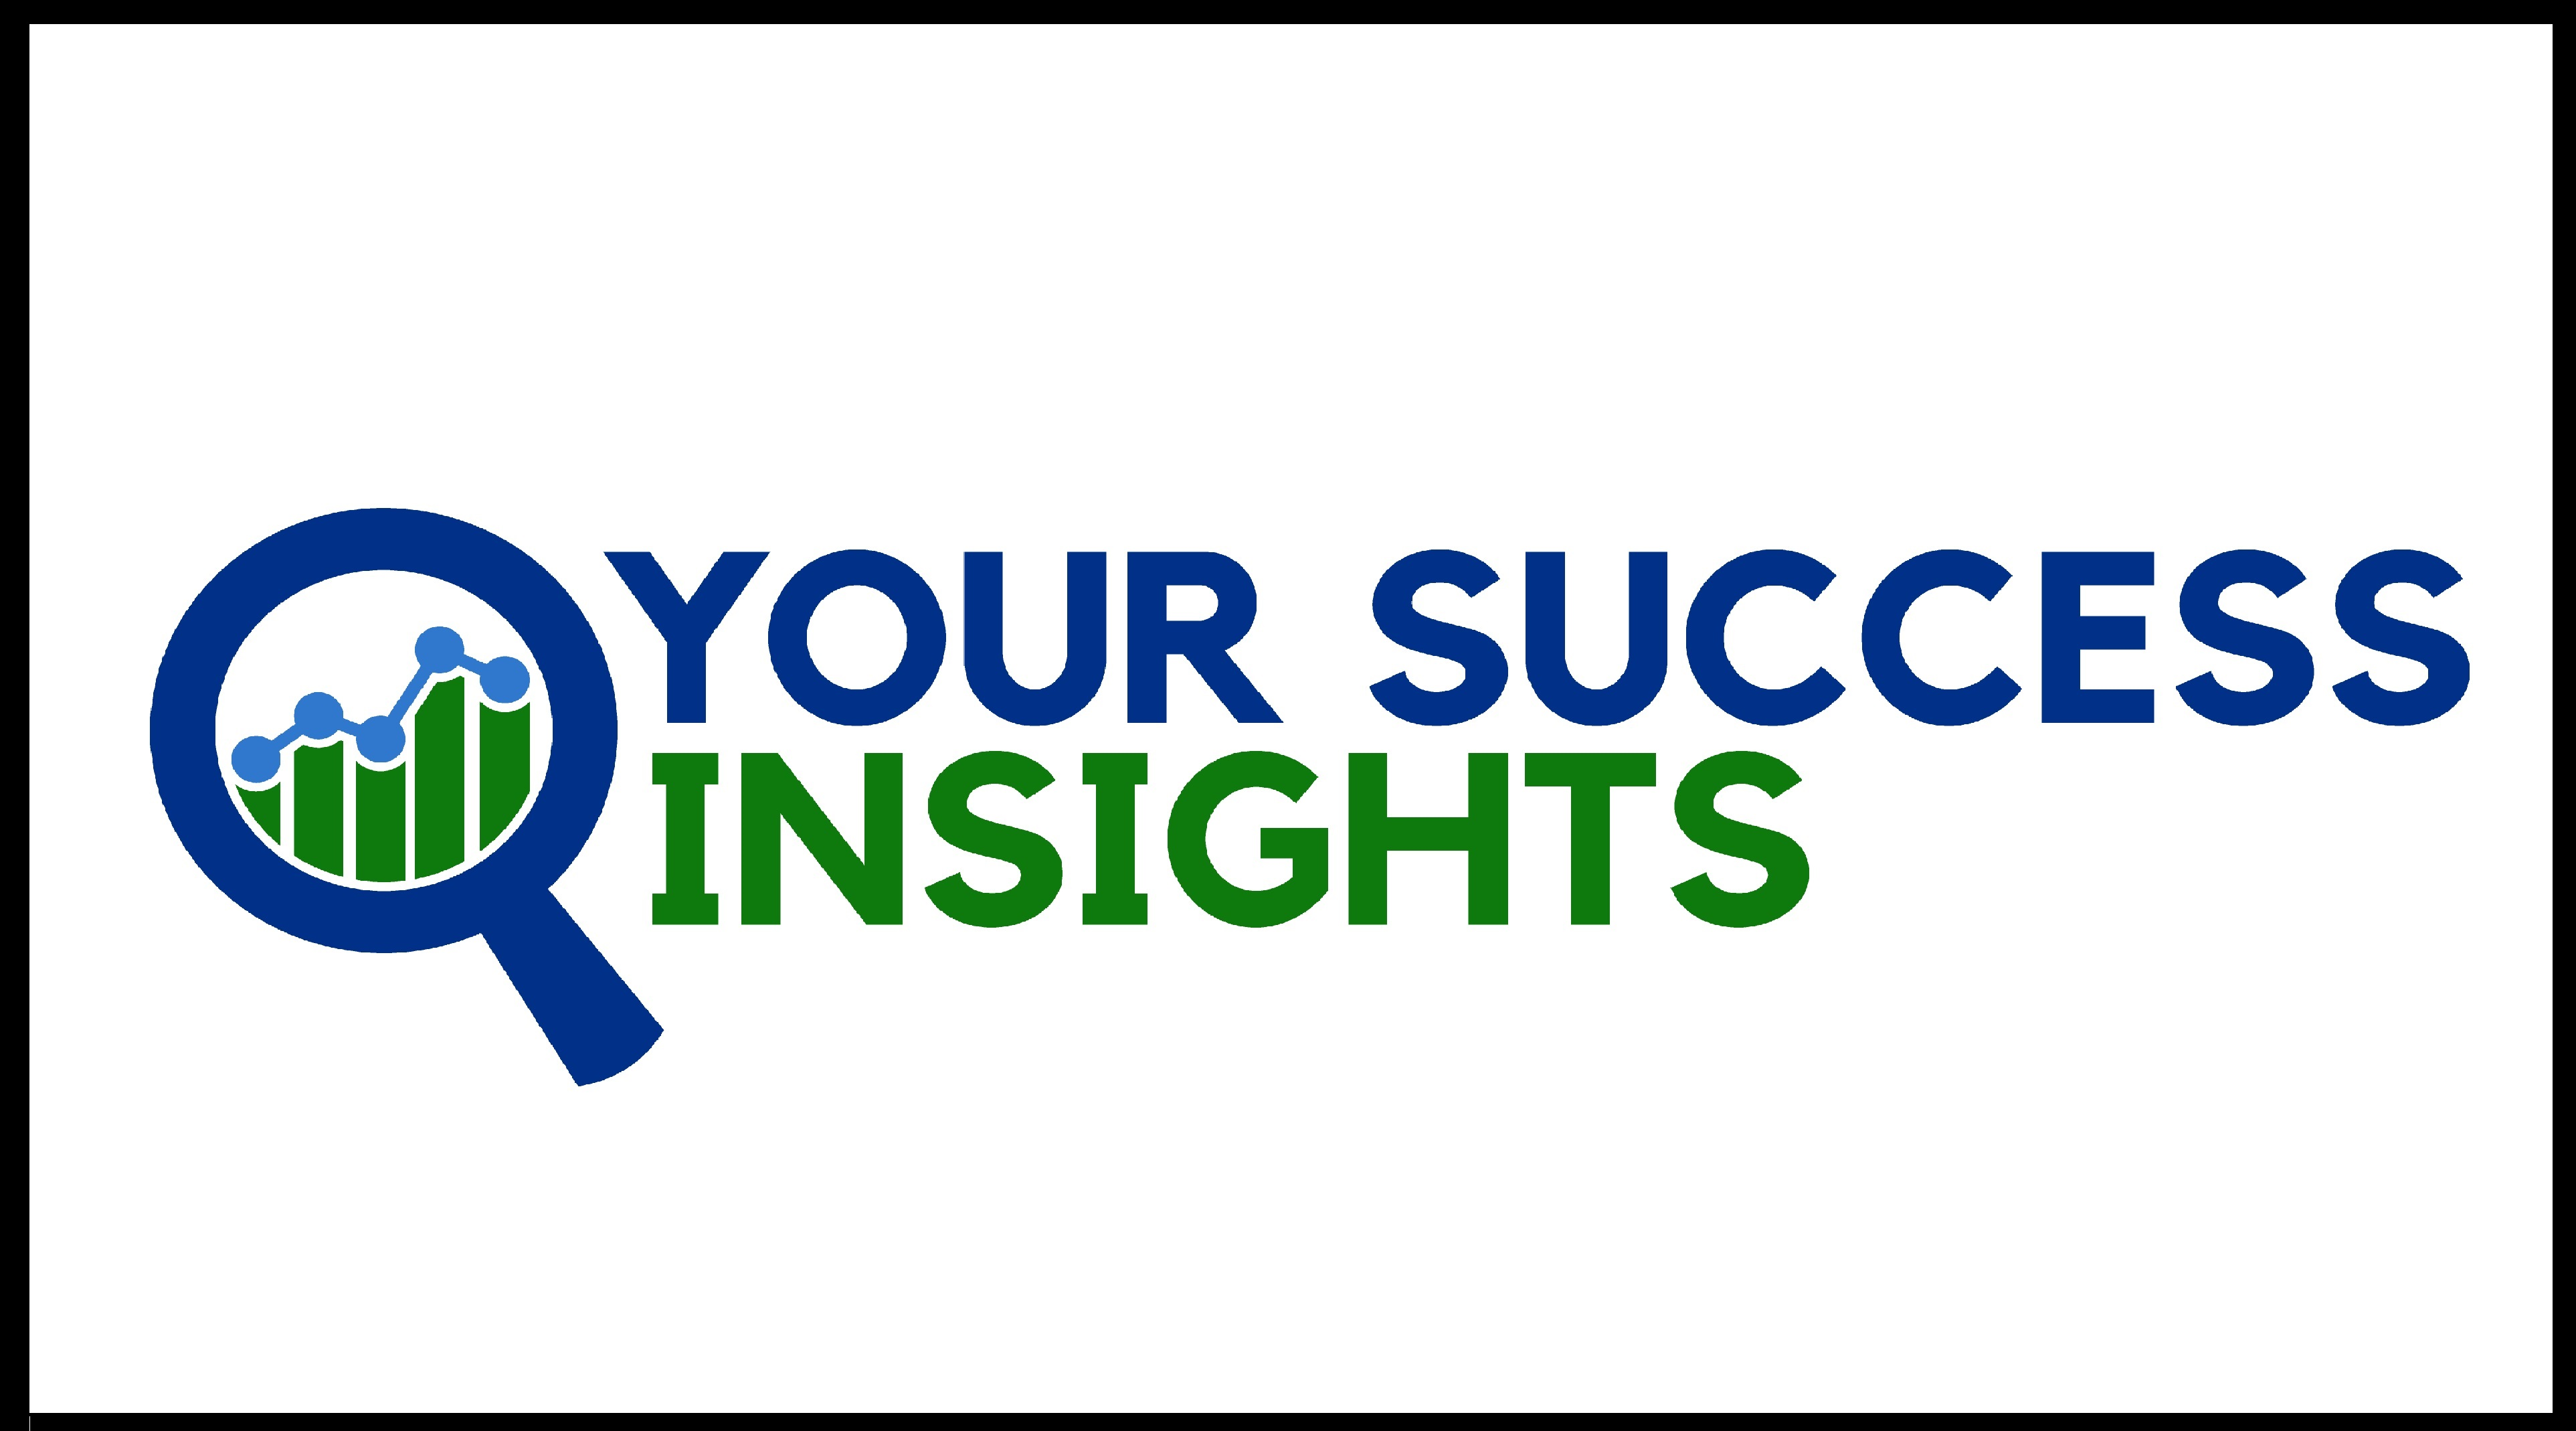 Your-Success-Insights-logo2